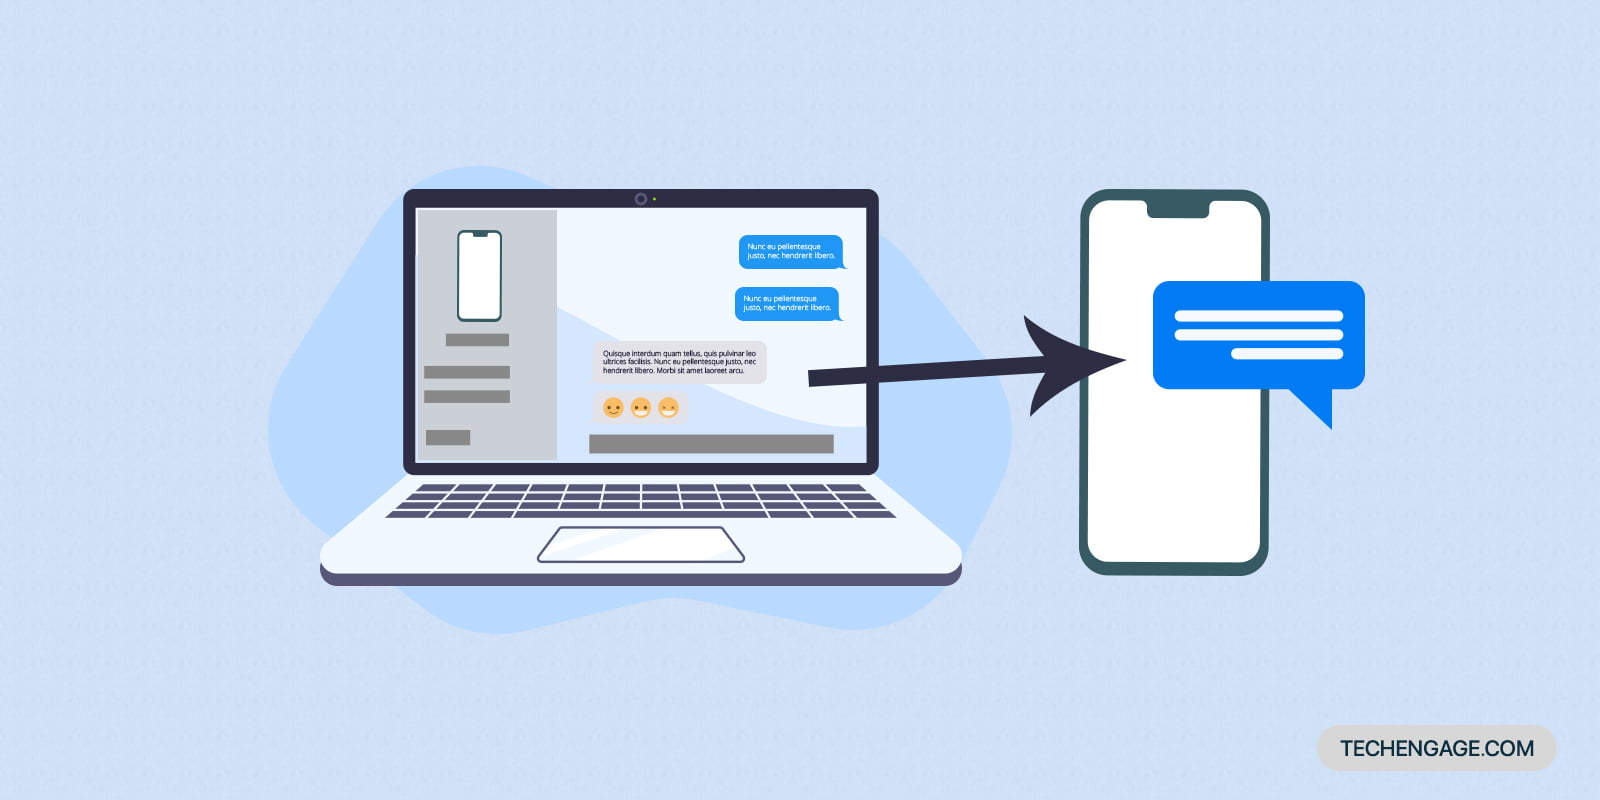 How to send (and receive) messages on a laptop or PC